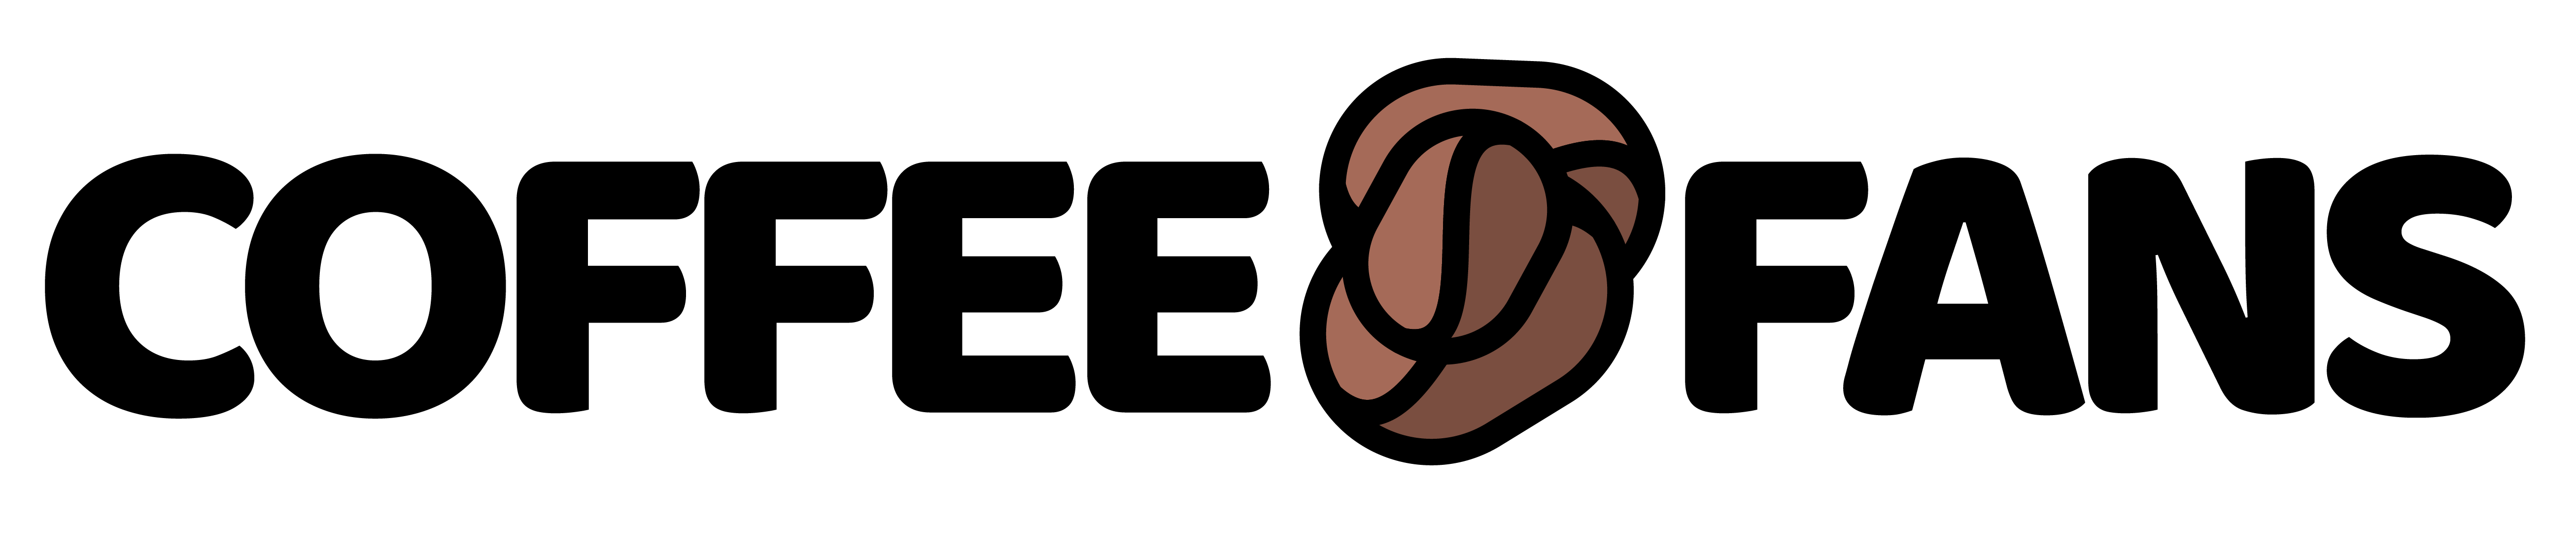 coffeefans.net